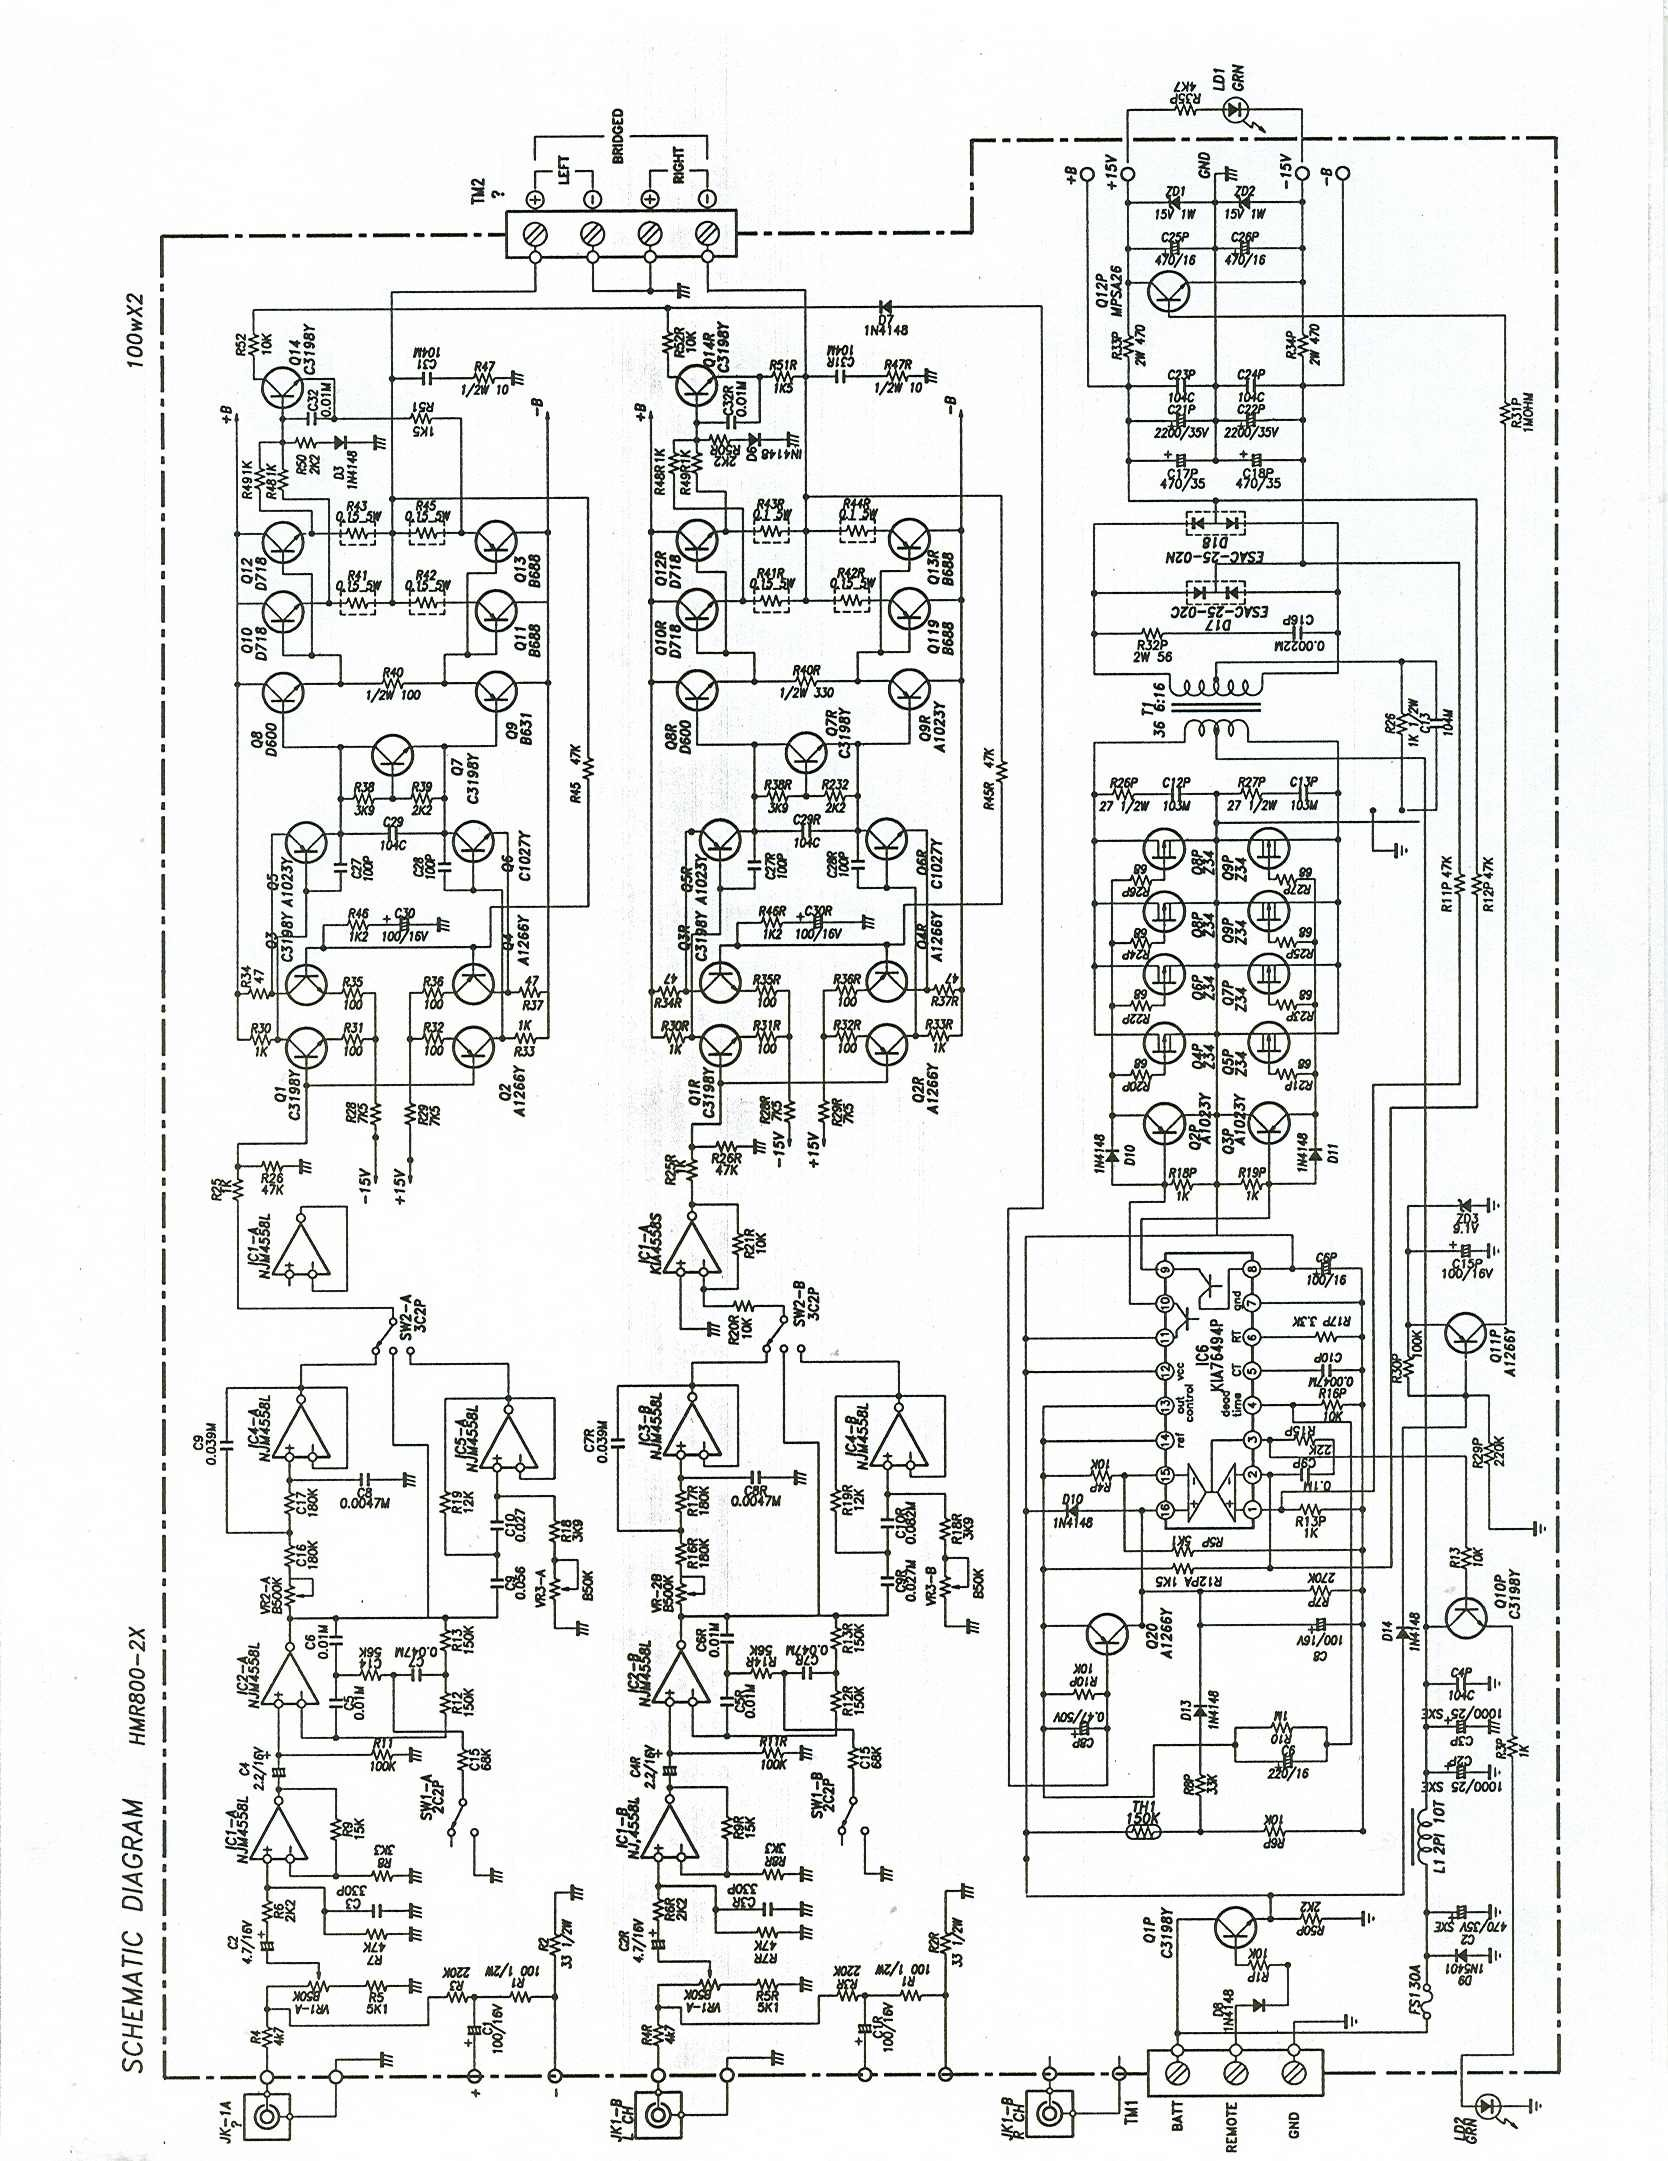 hight resolution of car amplifier schematics easy wiring diagrams simple audio amplifier circuit schematic car audio amp schematic